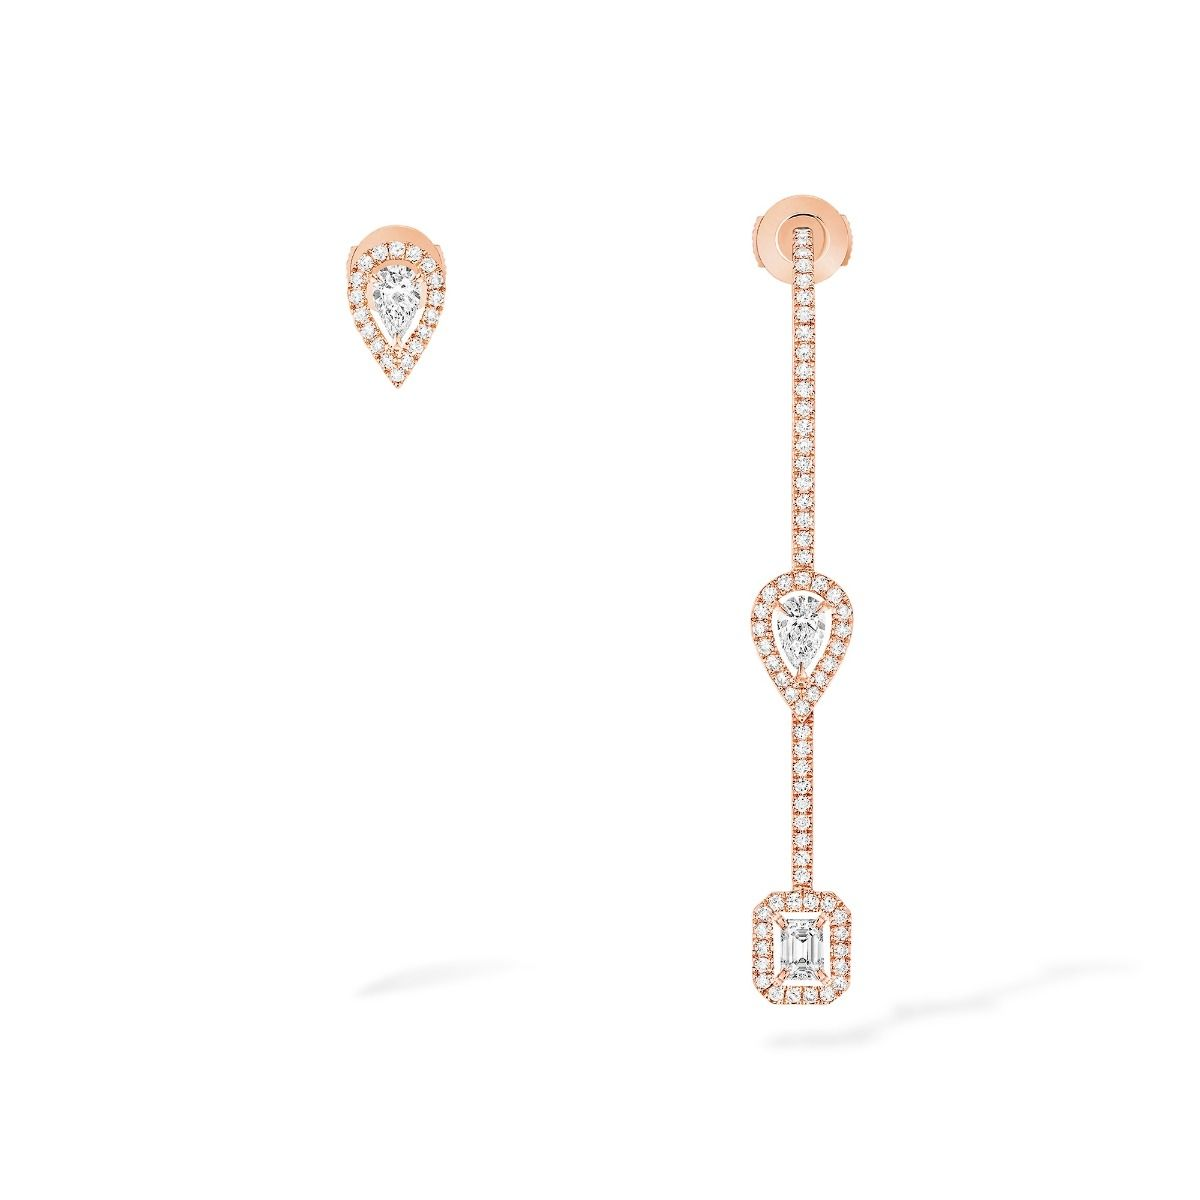 My Twin Hook And Stud Earrings 3X010Ct Earrings - Pink Gold